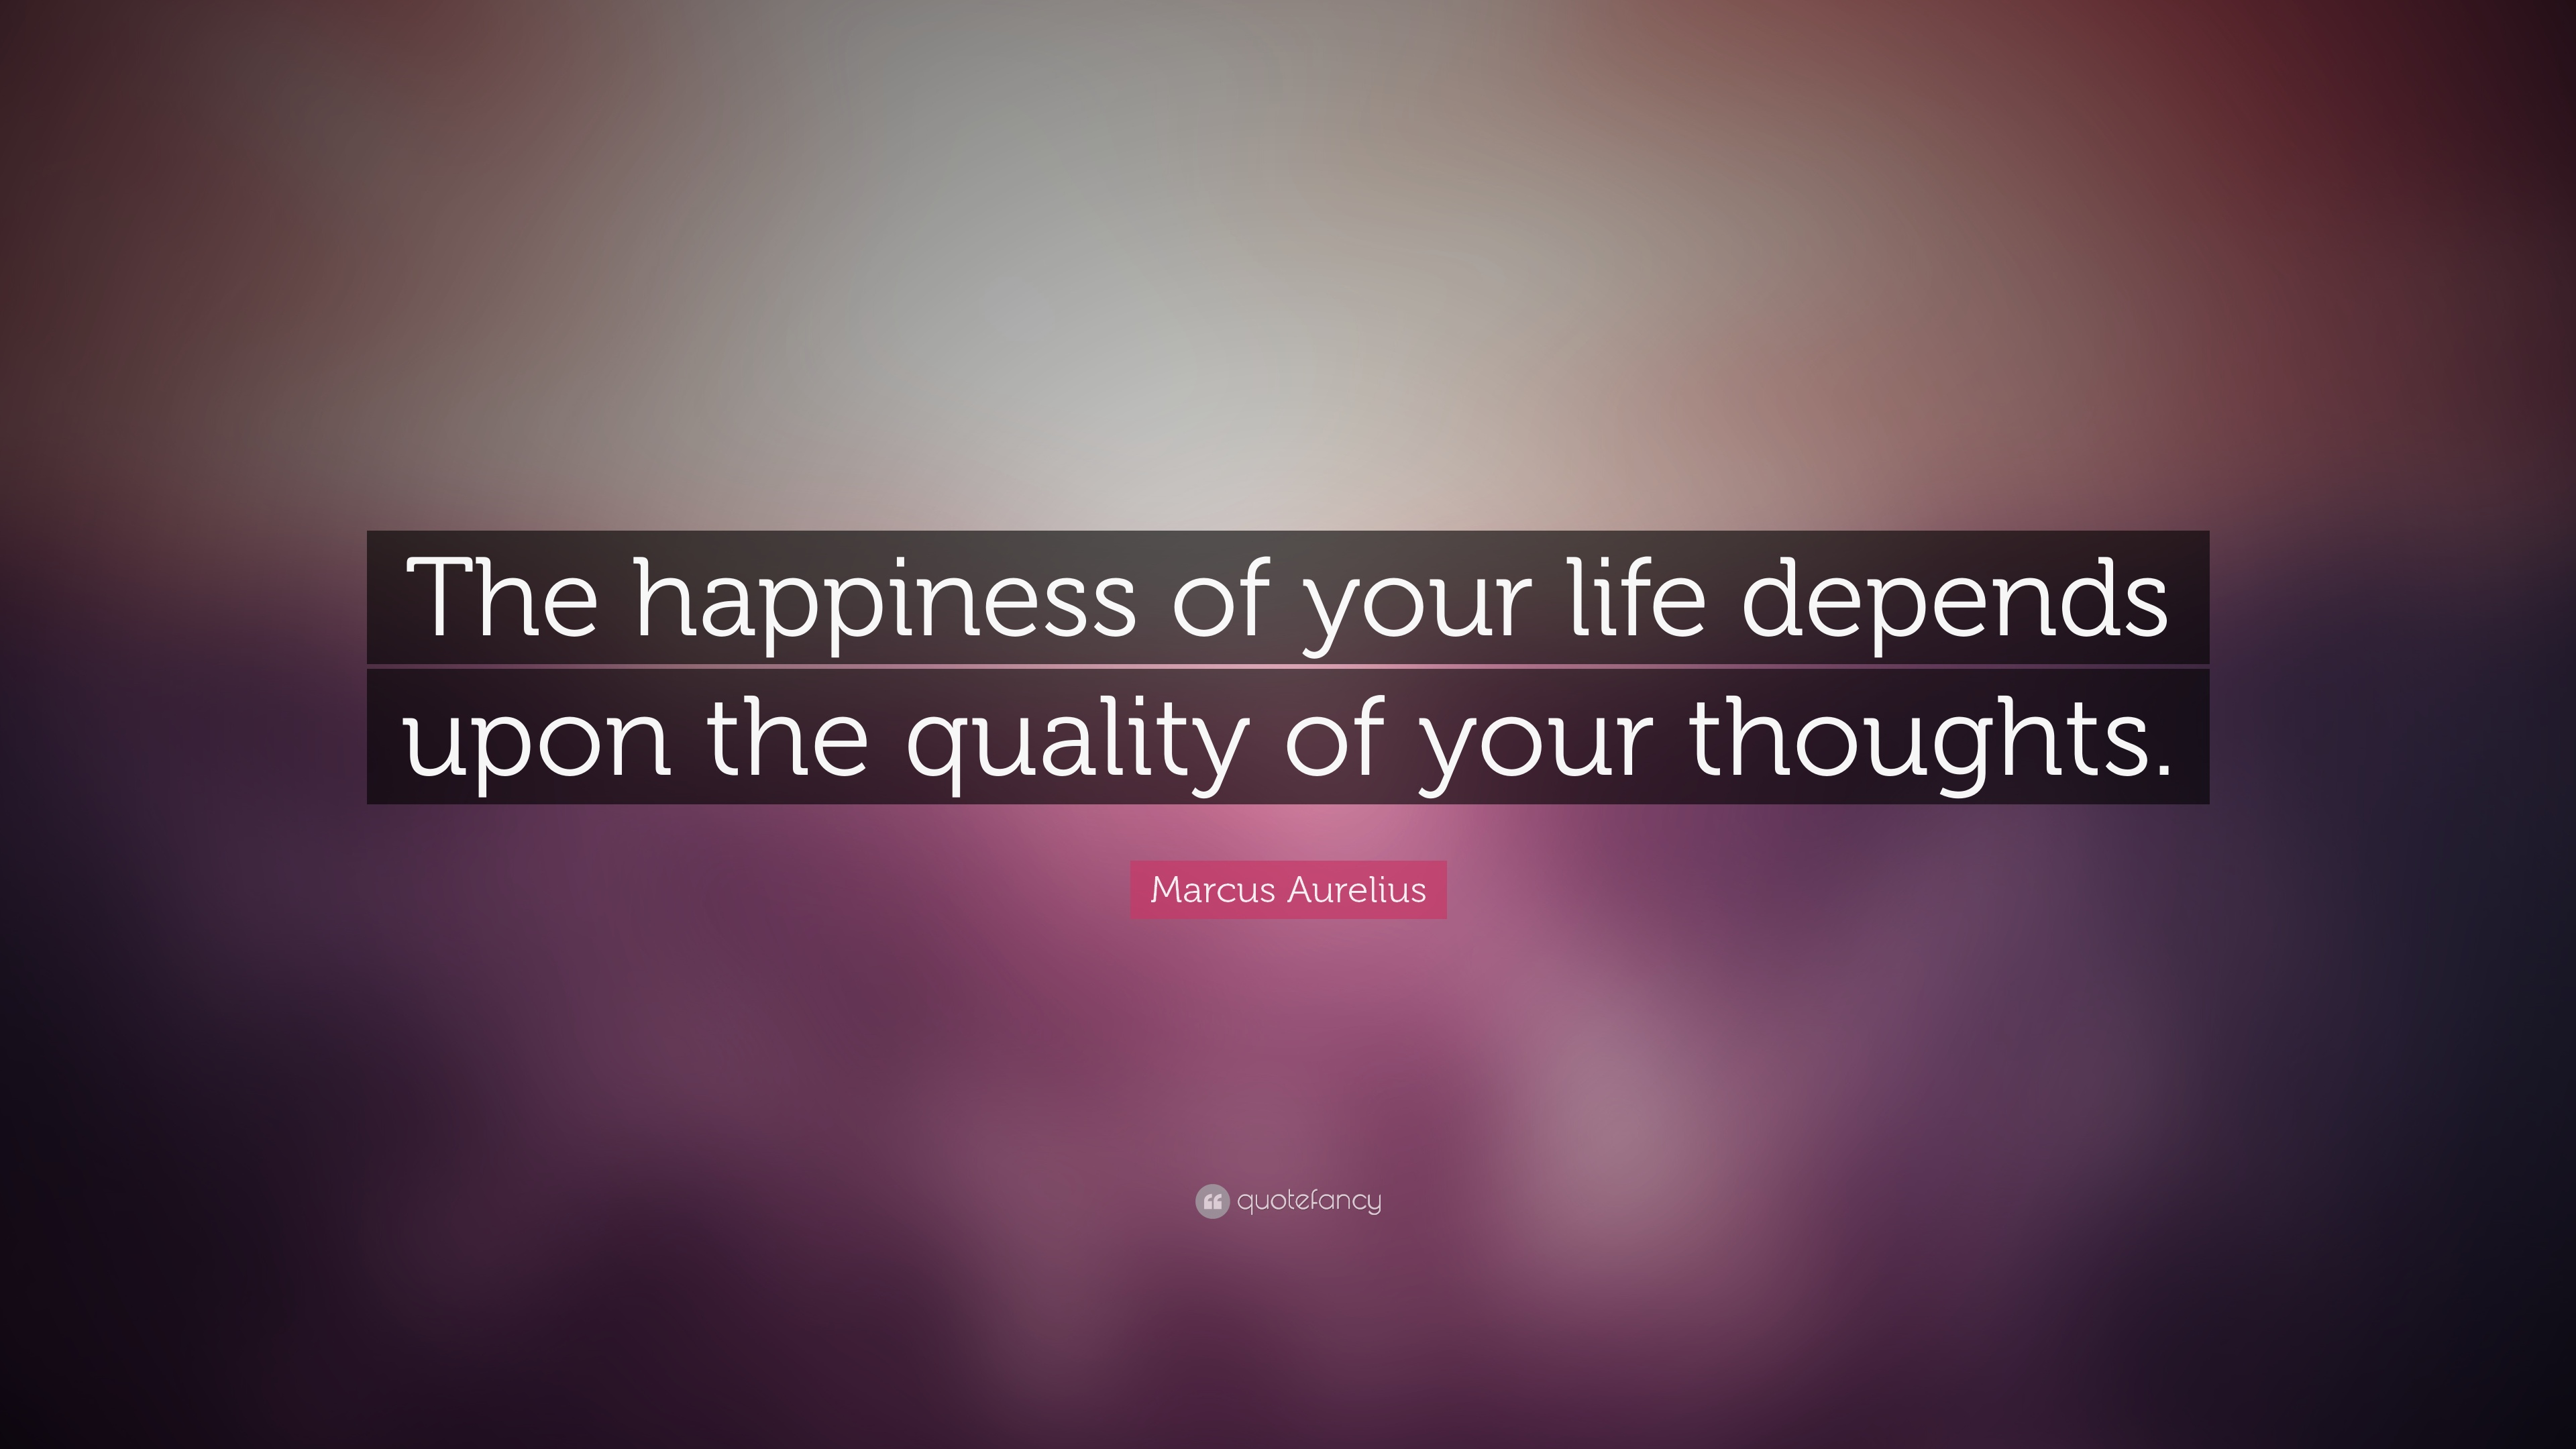 Socrates Wallpaper Quotes Marcus Aurelius Quote The Happiness Of Your Life Depends